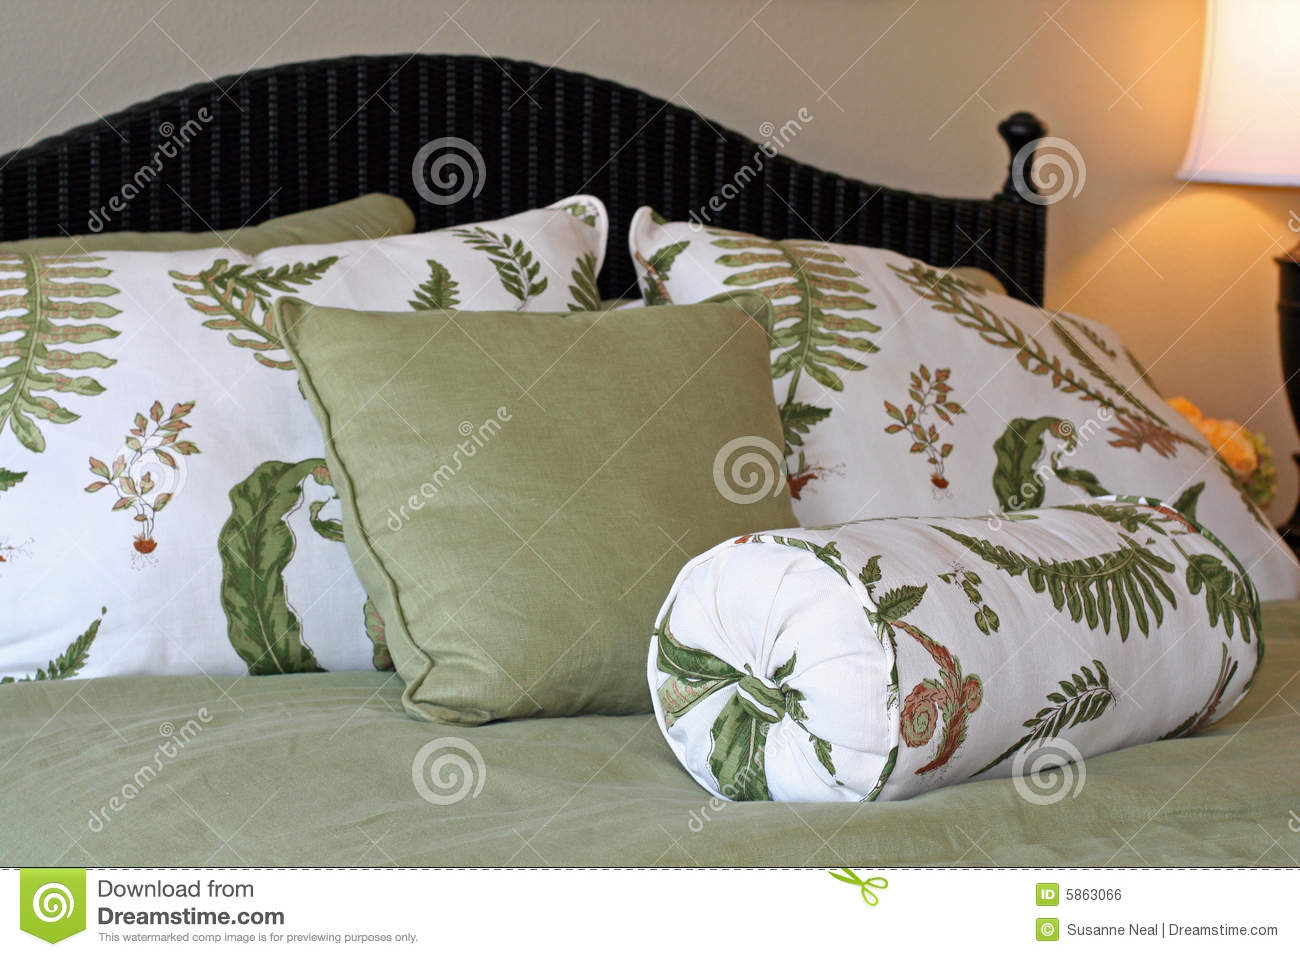 green bedding royalty free stock images  image  - green  white bedding pillows royalty free stock image